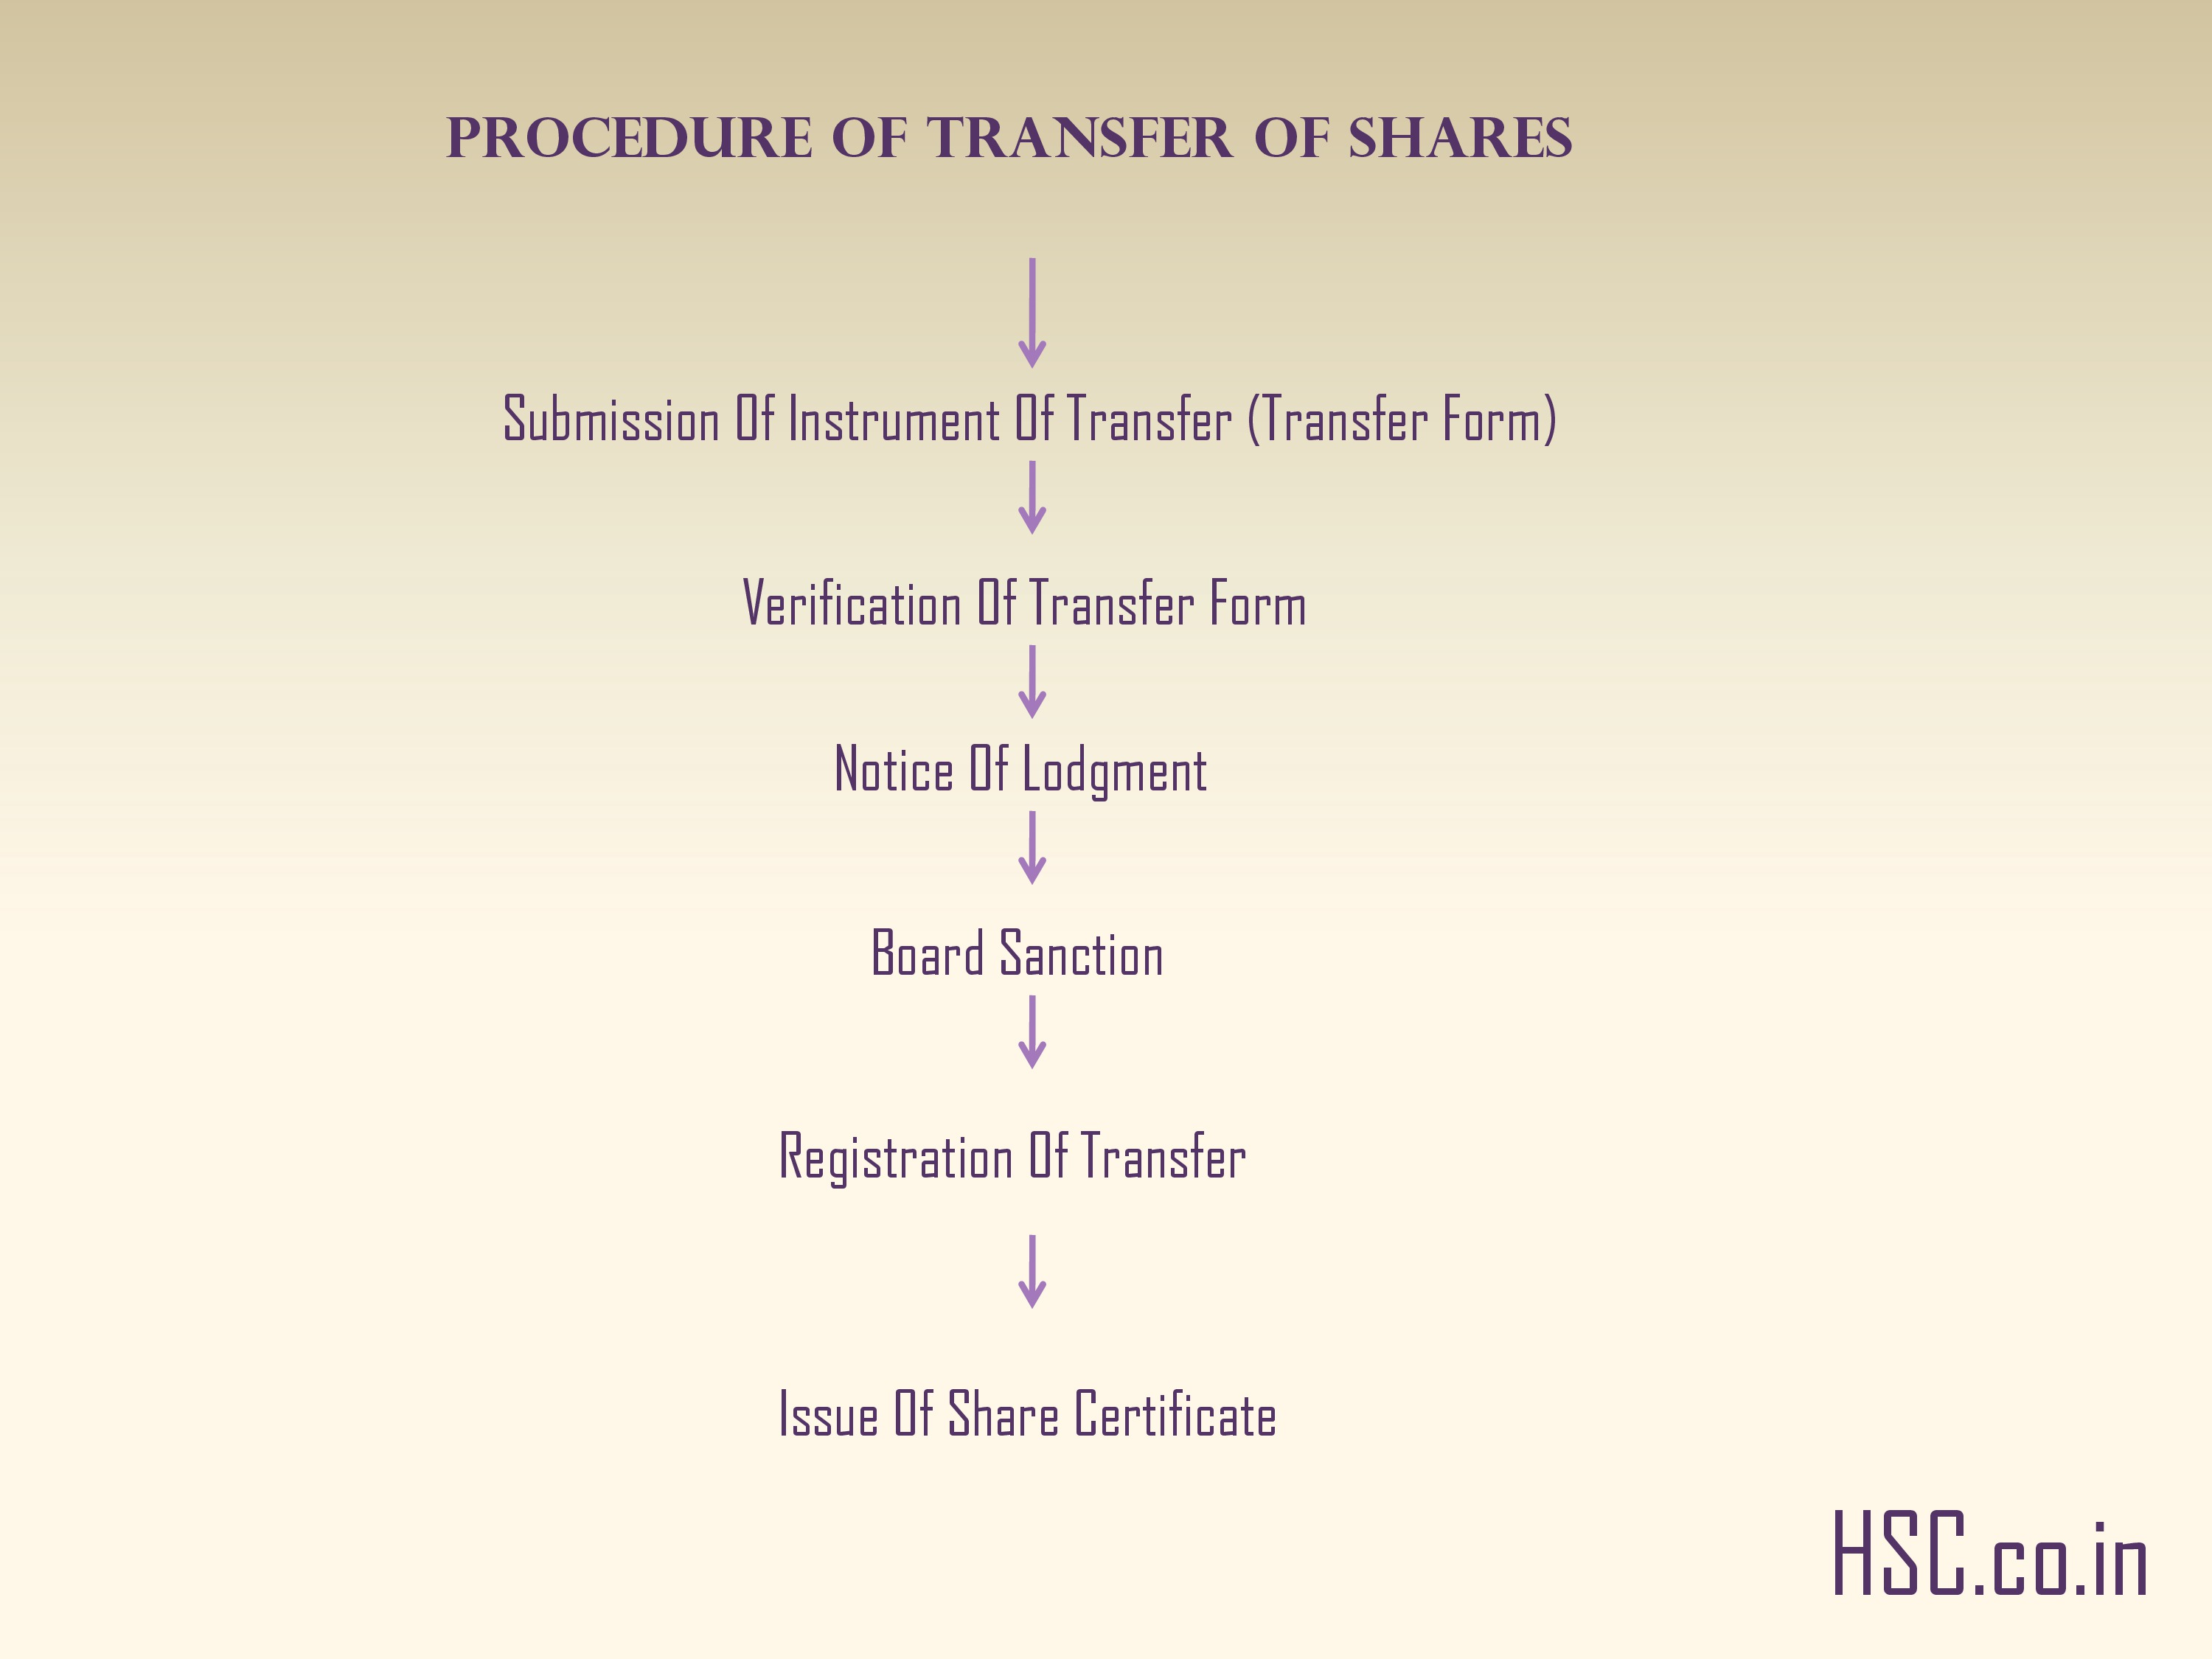 Procedure of transfer of shares